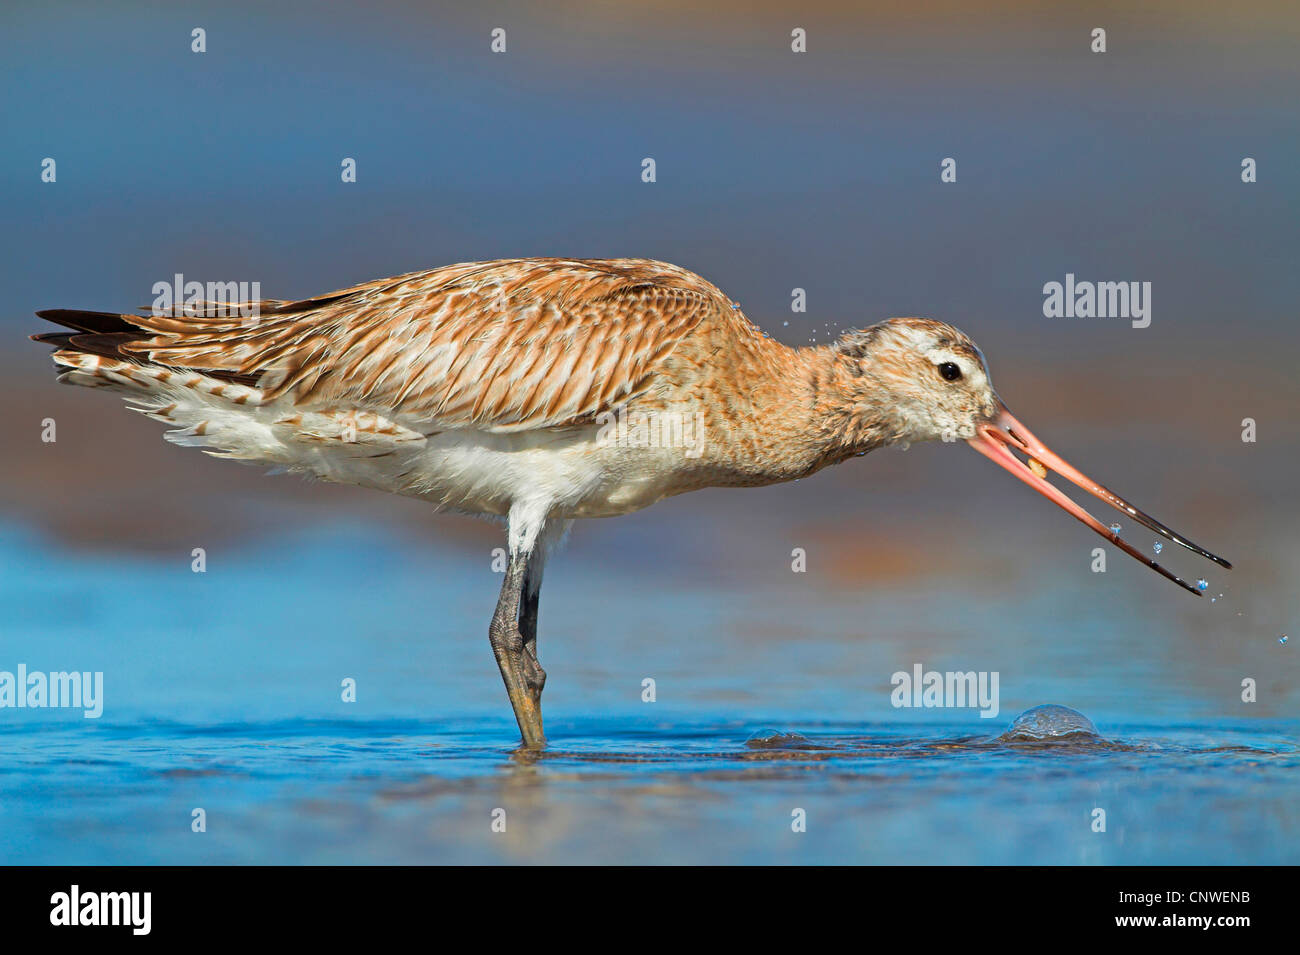 black-tailed godwit (Limosa limosa), on the feed on the waterfront, Oman - Stock Image